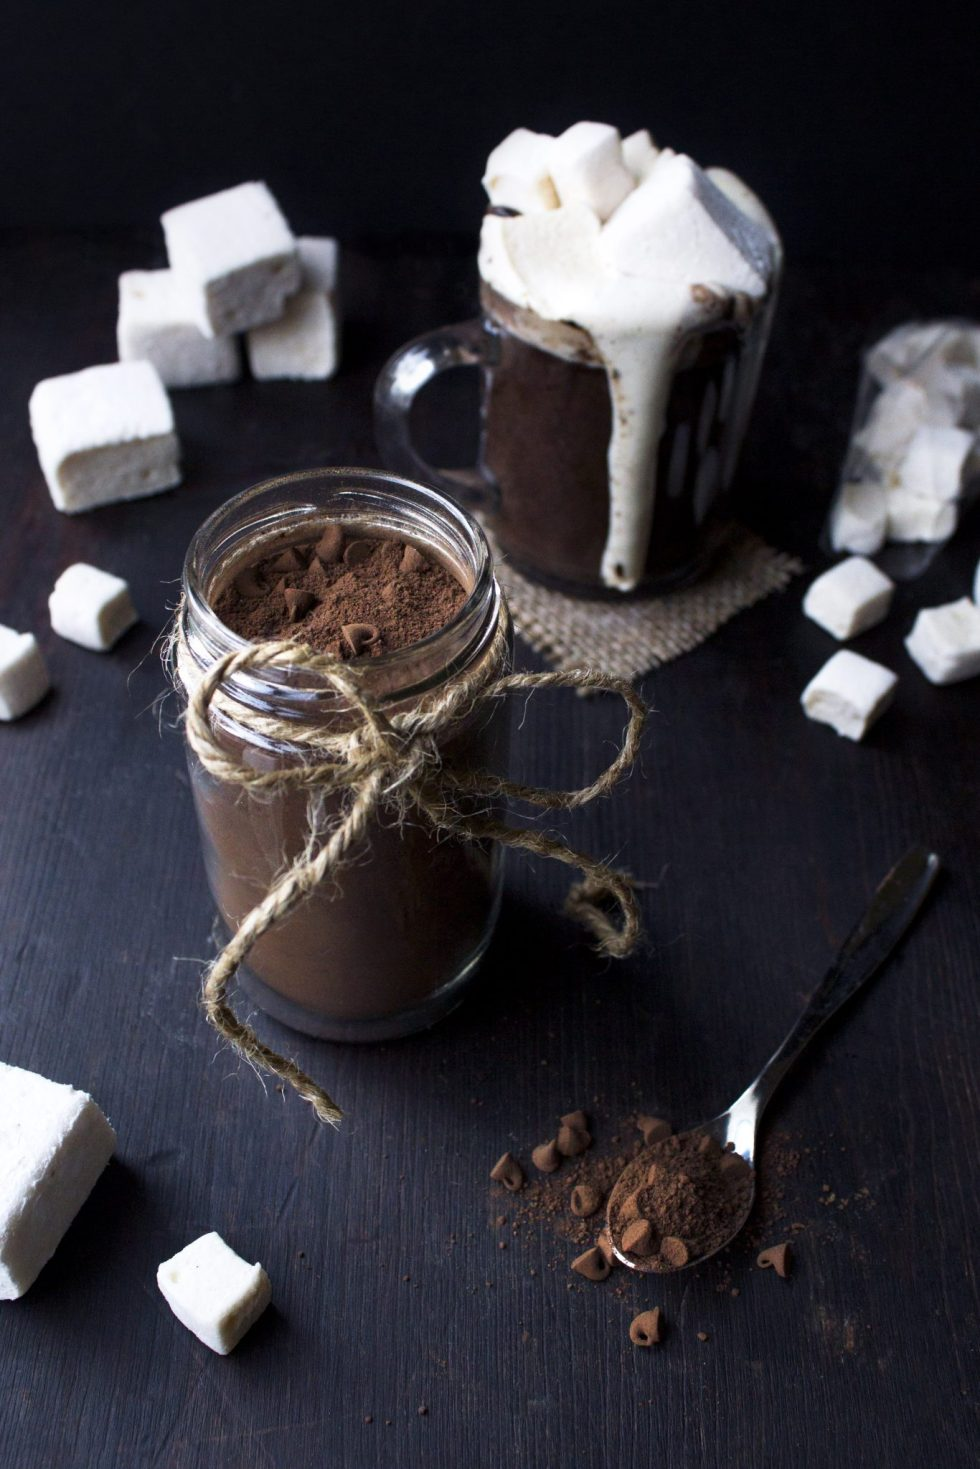 Dairy-Free Hot Cocoa Mix In a Jar | Uses coconut sugar and dark cocoa. Vegan friendly!